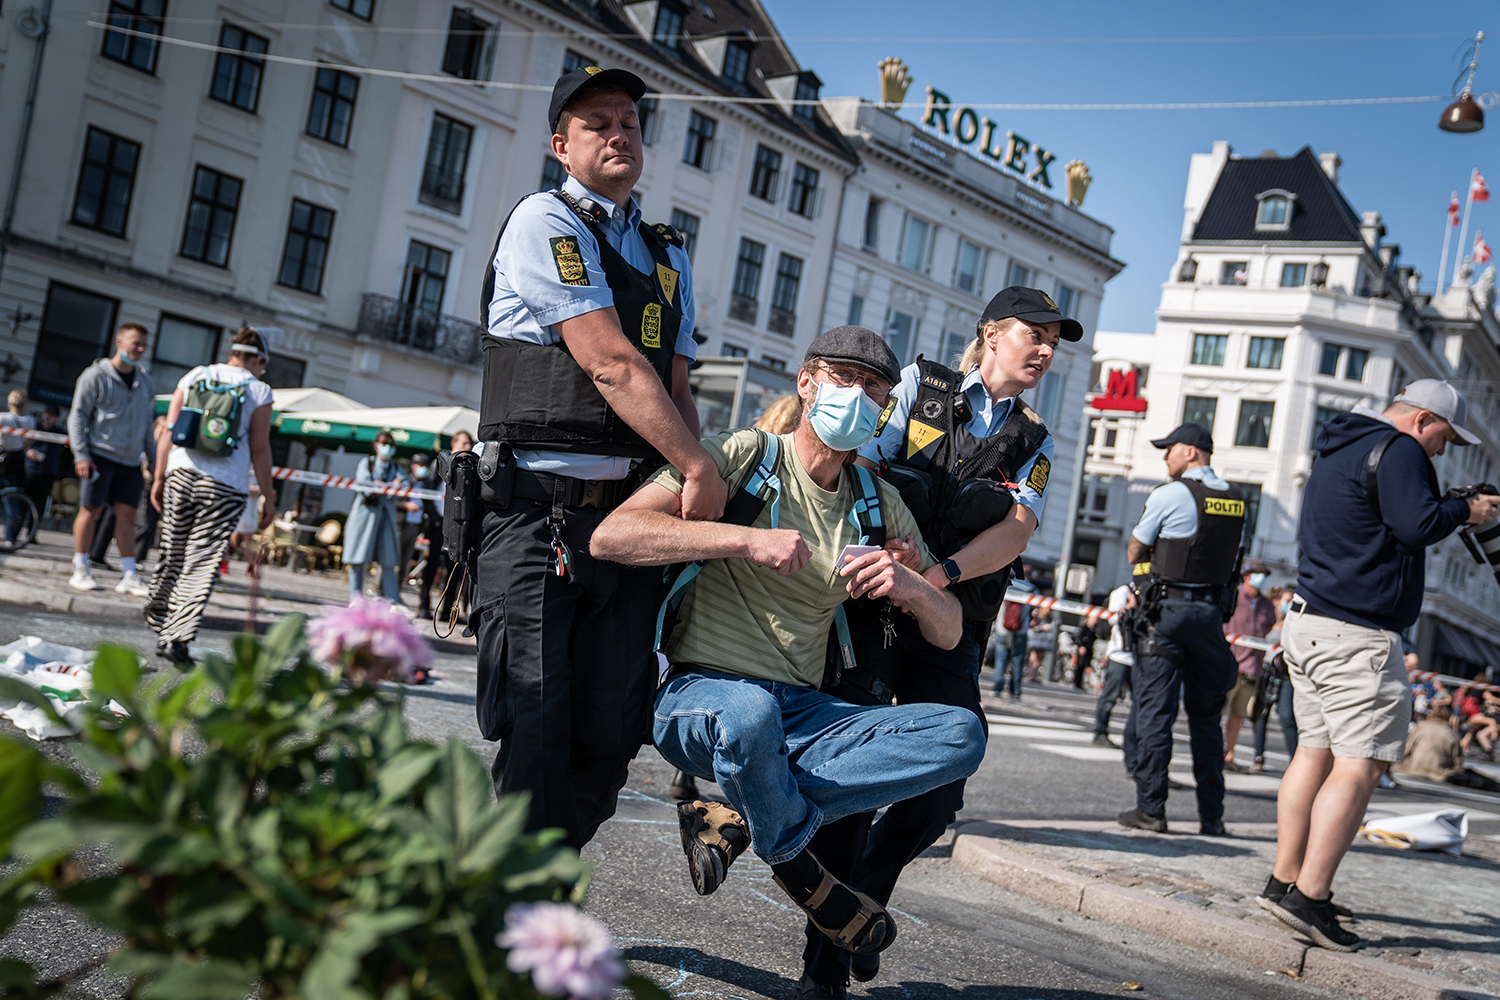 Activists from the Extinction Rebellion group are carried away by police as they block traffic at Kongens Nytorv Square in Copenhagen on Sept. 16. EMIL HELMS/Ritzau Scanpix/AFP via Getty Images